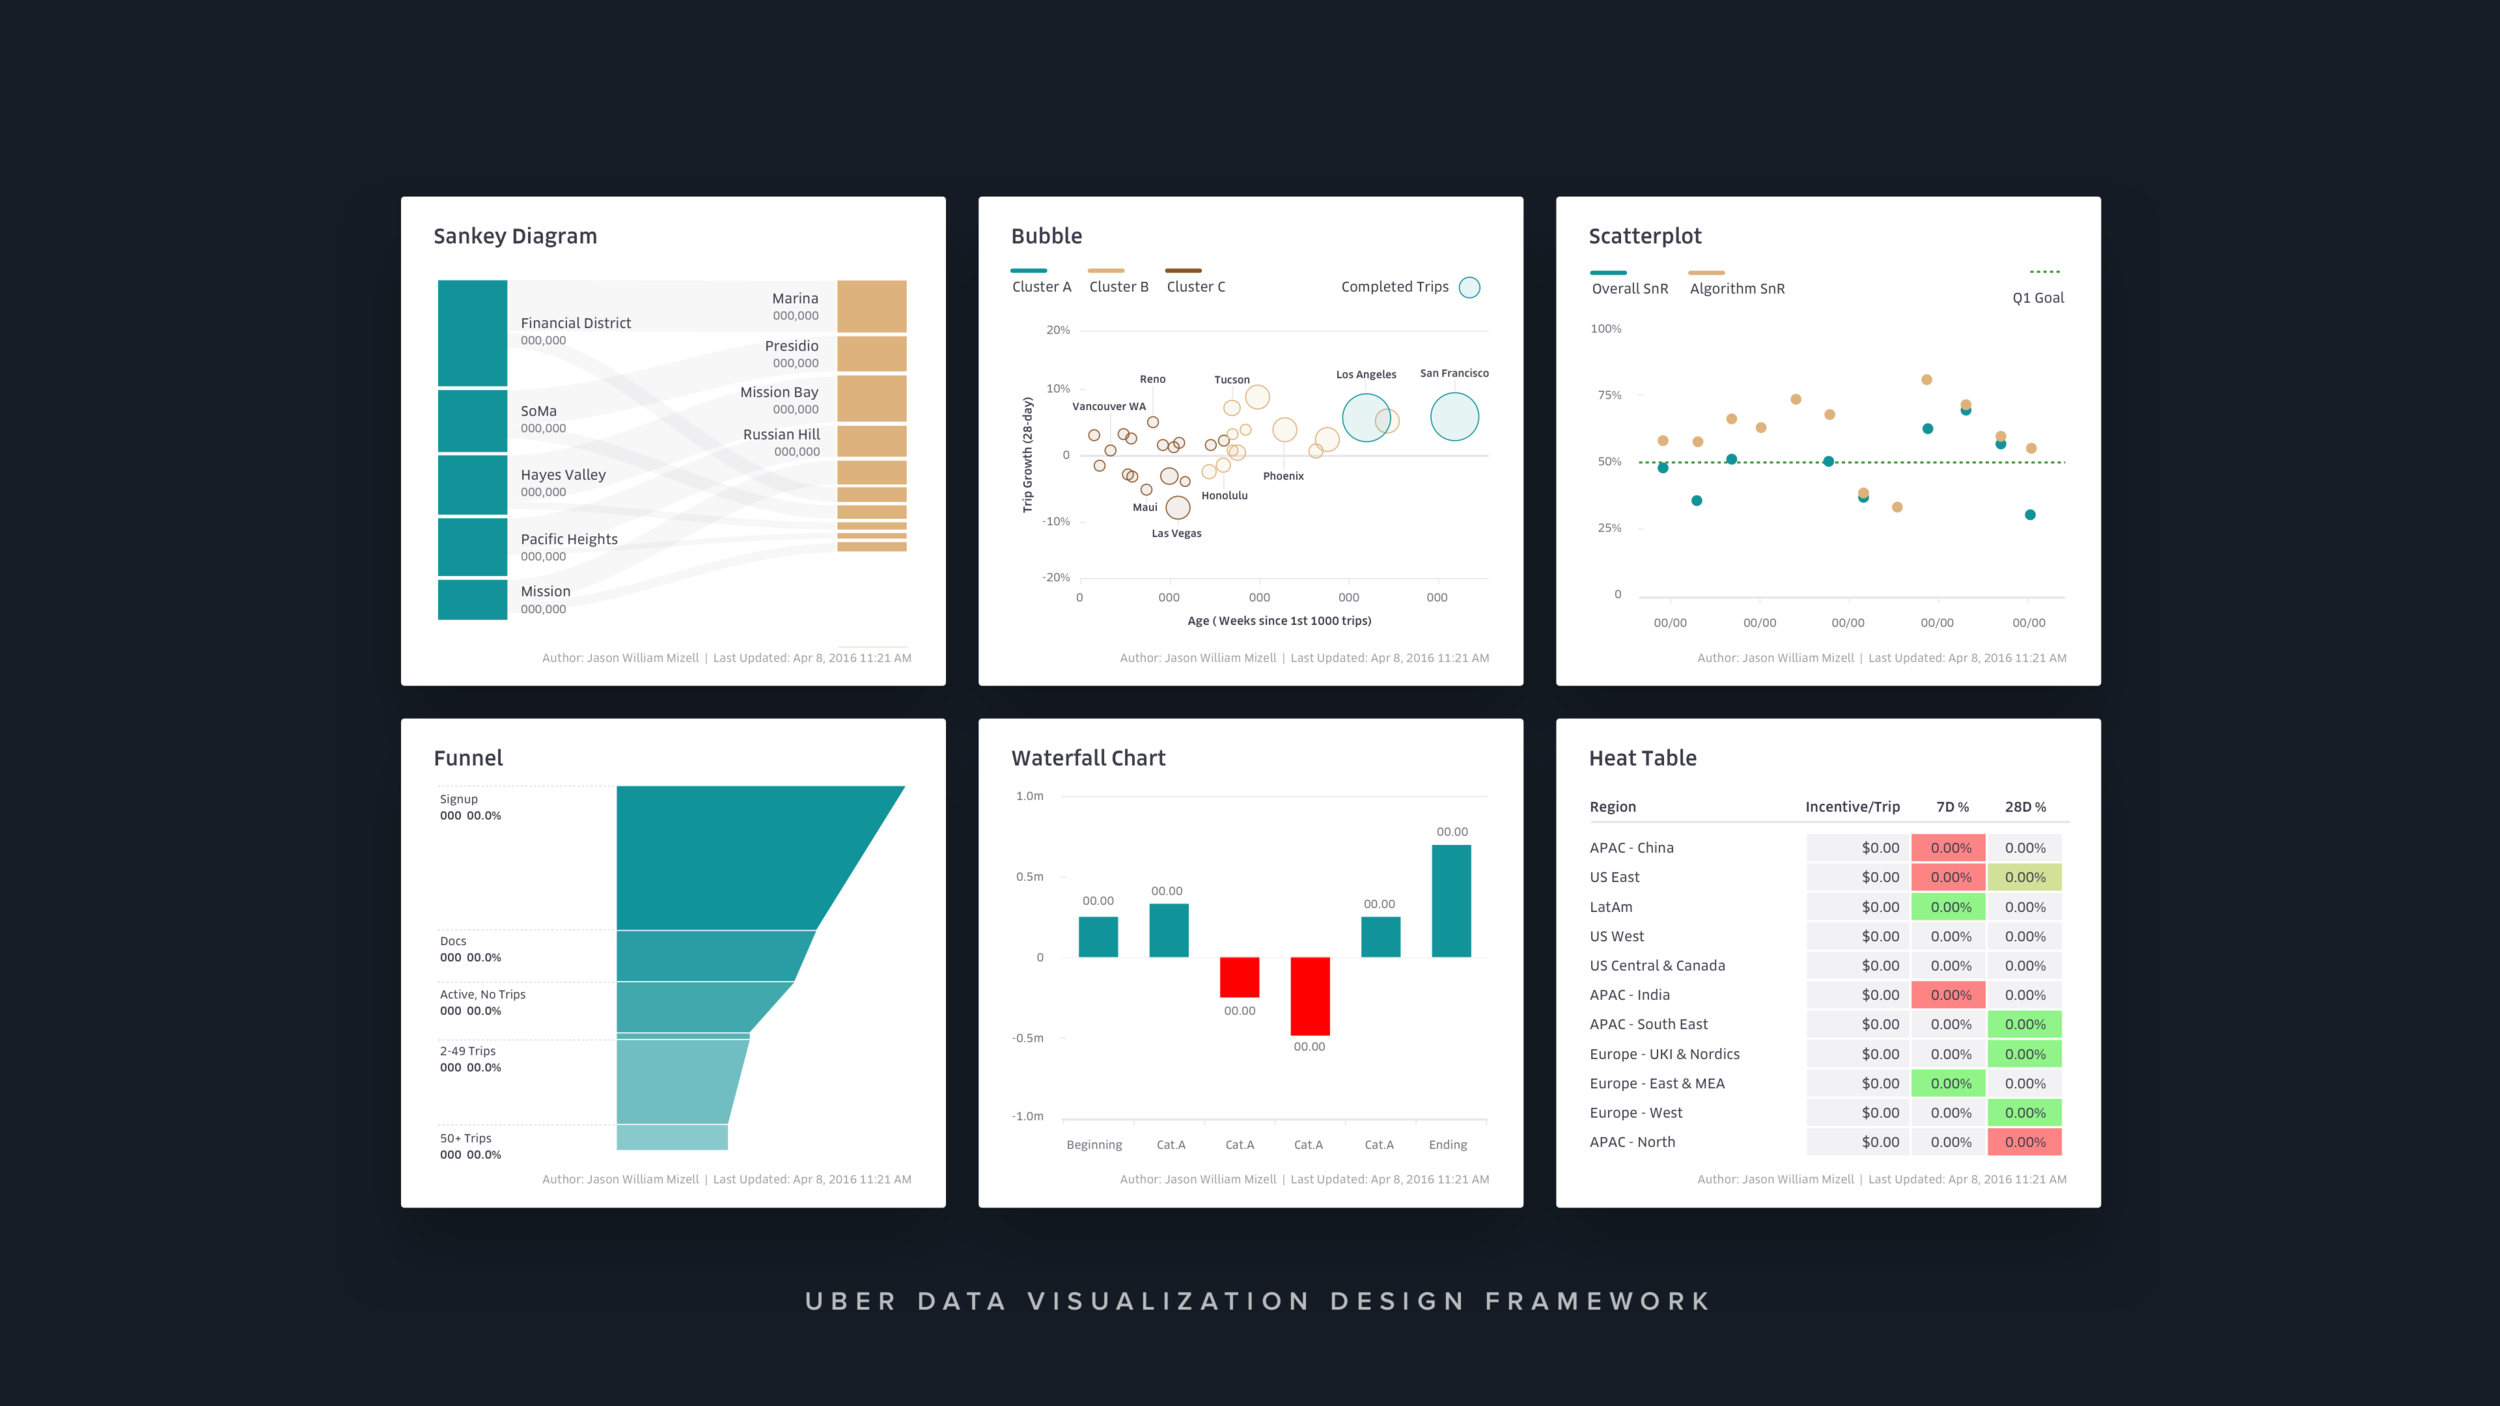 UBER Data Visualization Design Framework